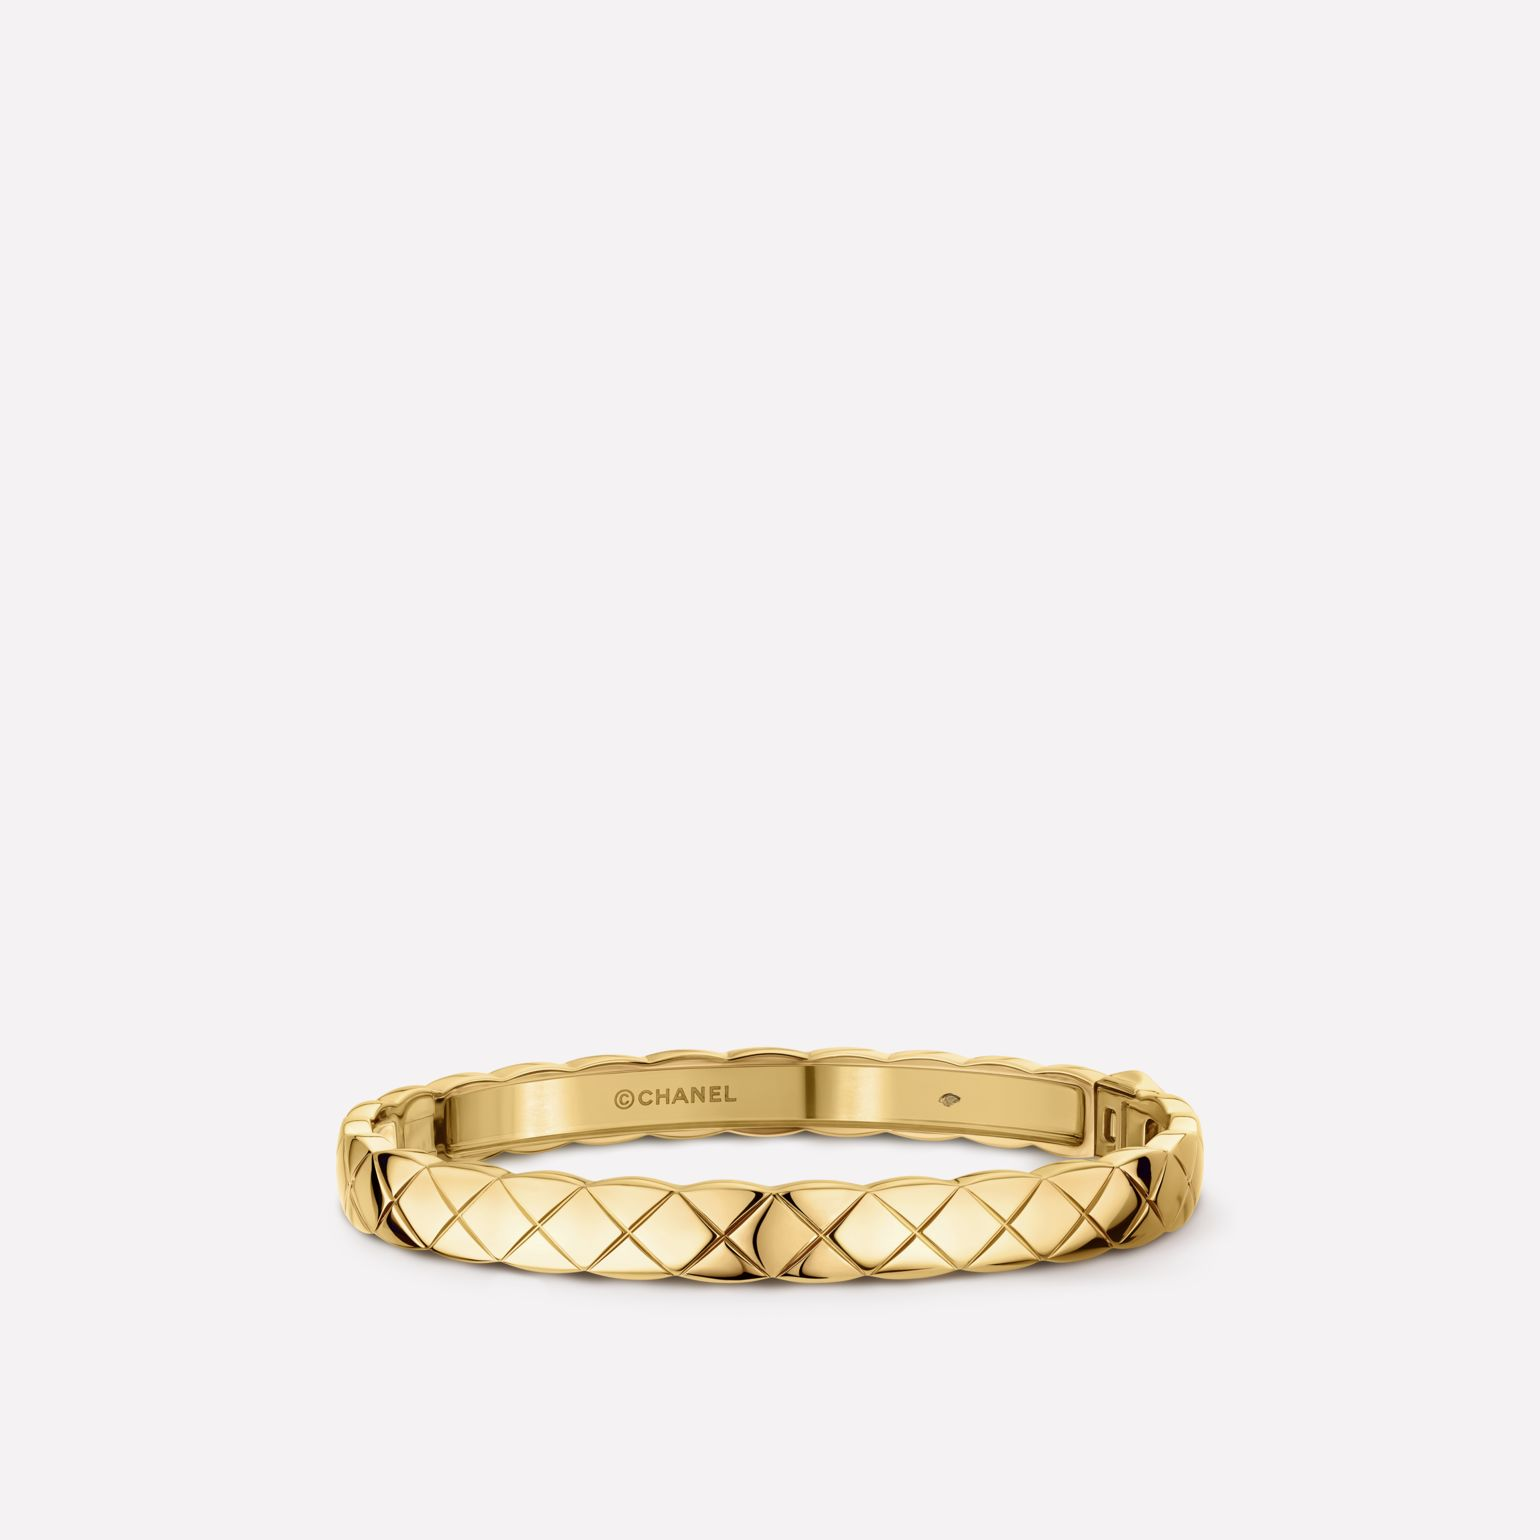 Coco Crush bracelet Quilted motif, 18K yellow gold